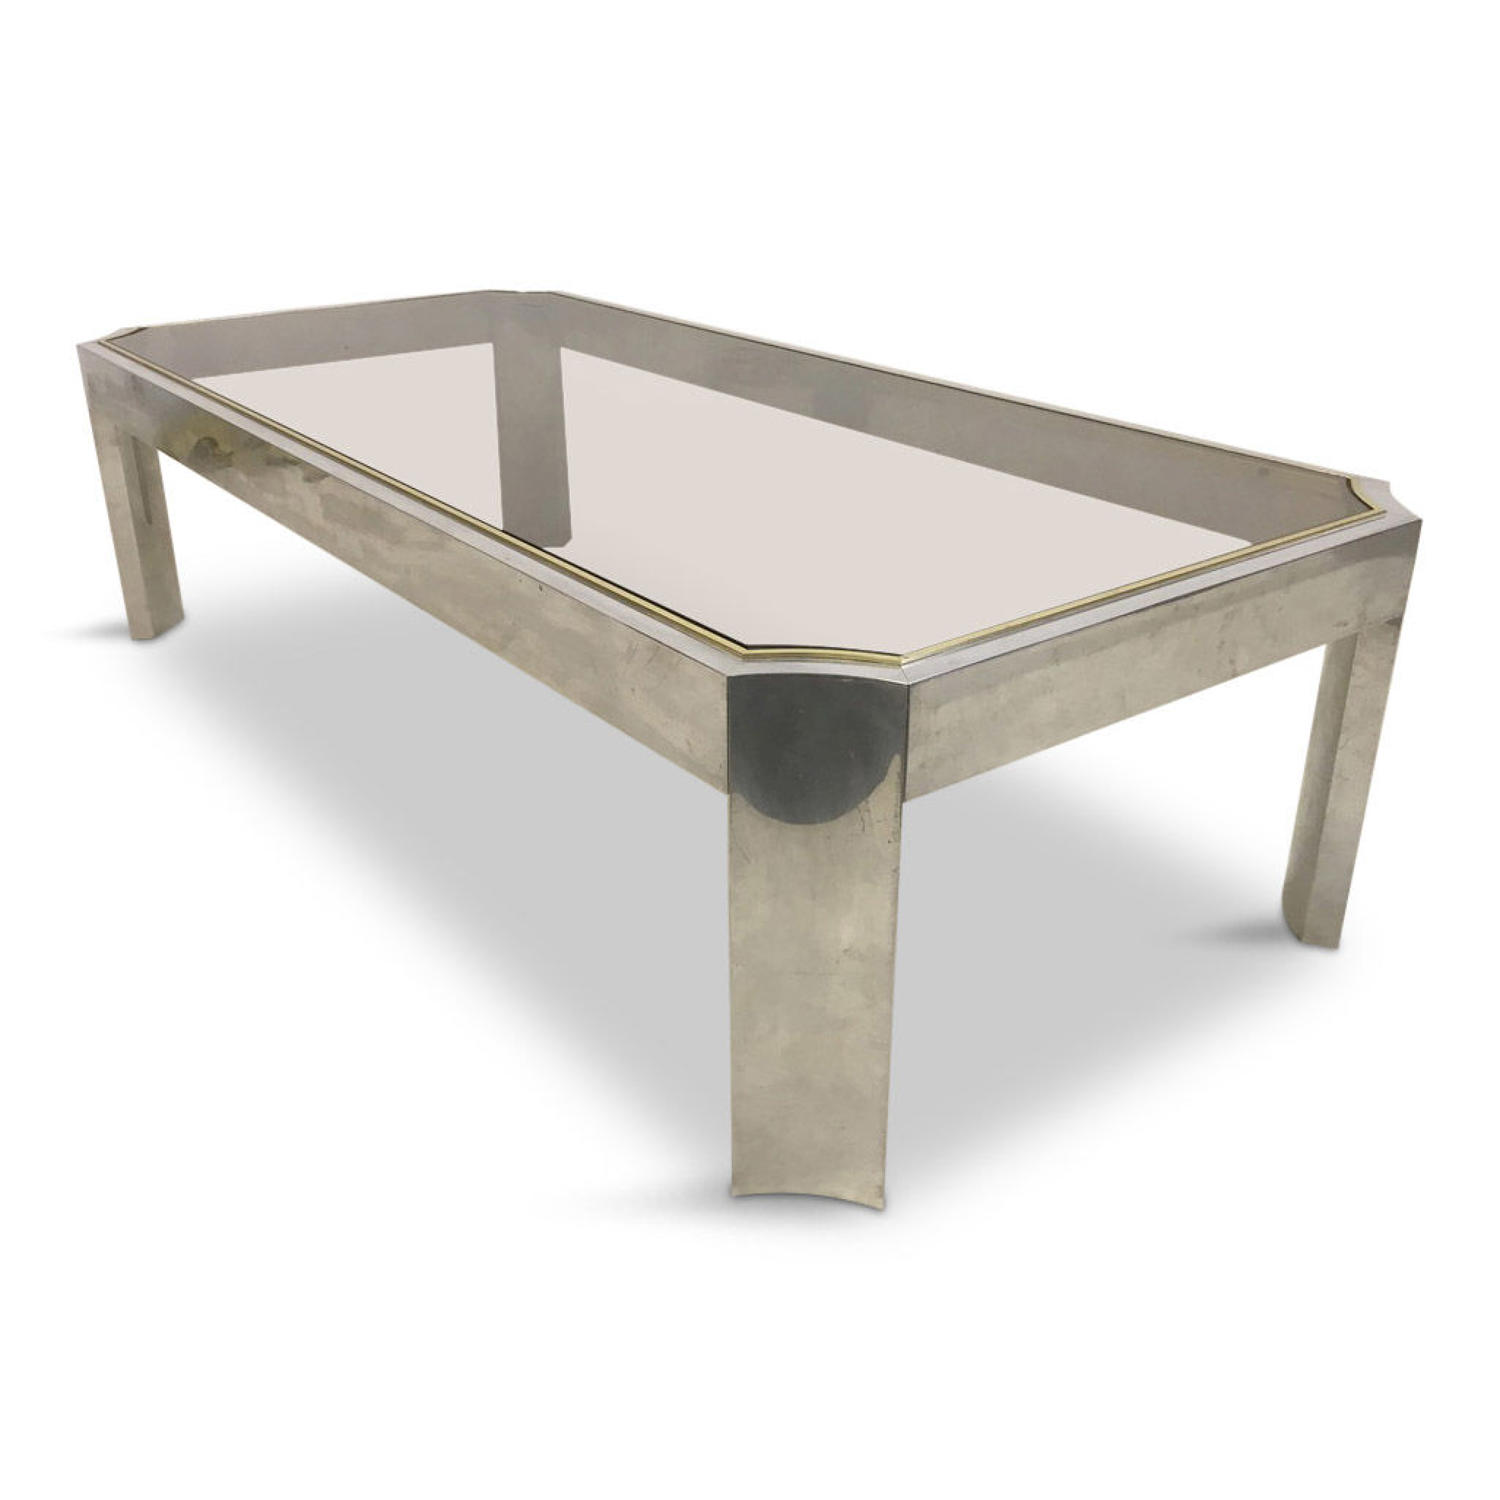 1970s aluminium and brass coffee table